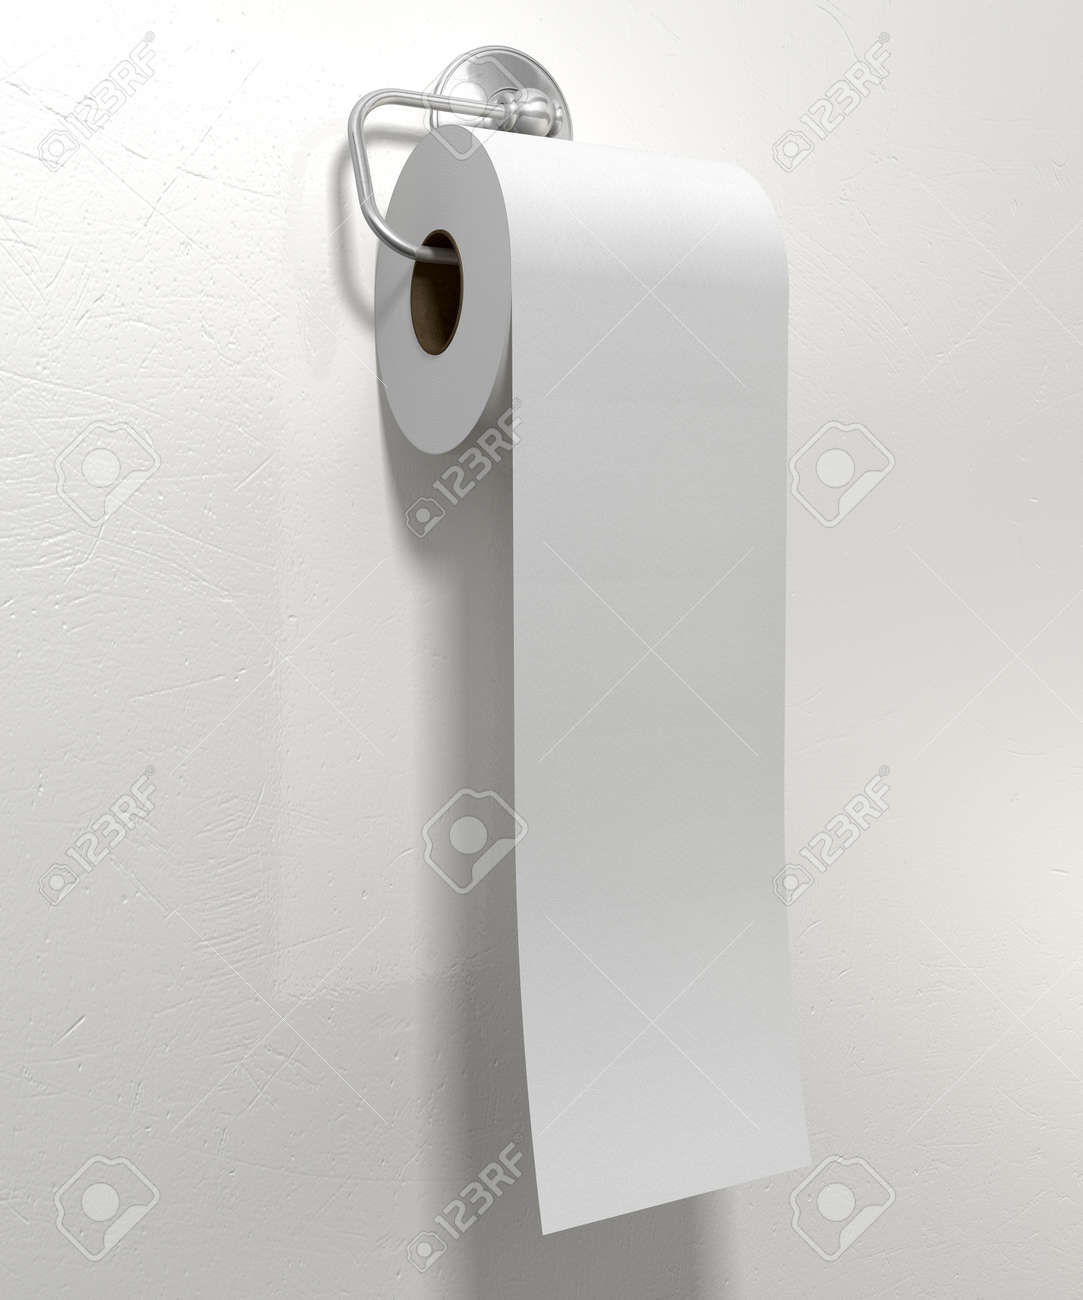 A Roll Of White Toilet Paper Hanging On A Chrome Toilet Roll Stock